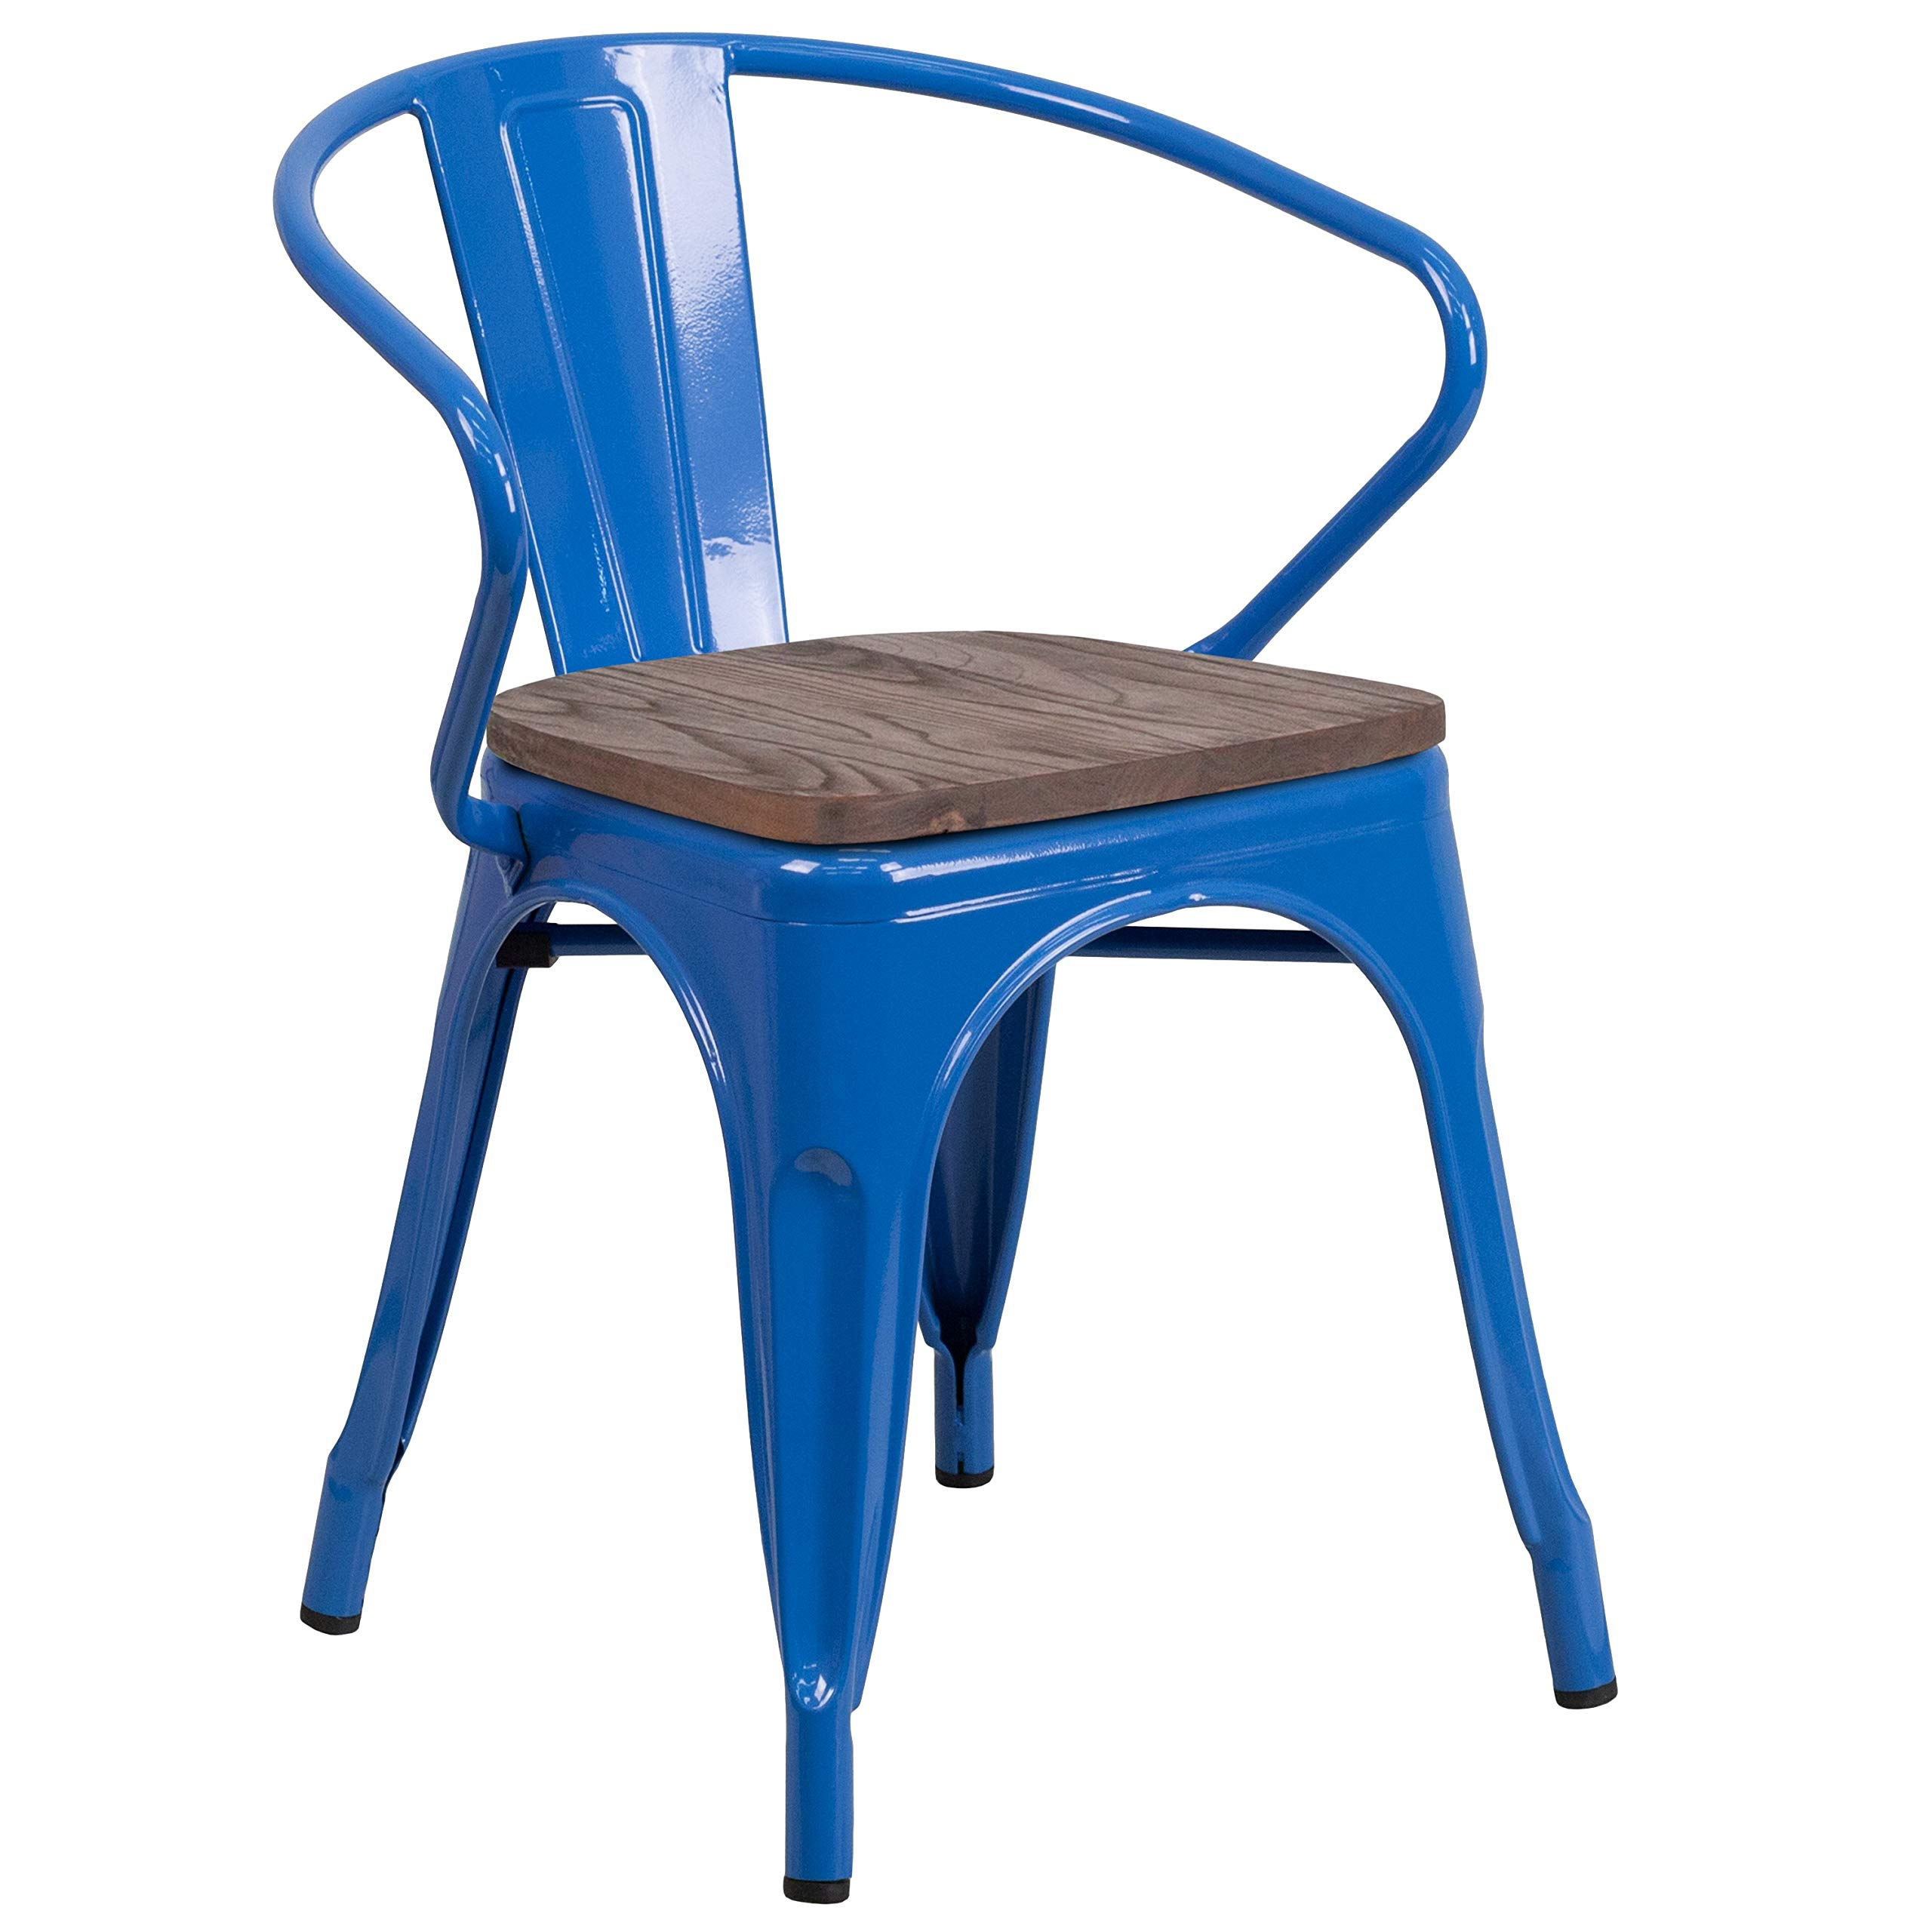 MFO Blue Metal Chair with Wood Seat and Arms